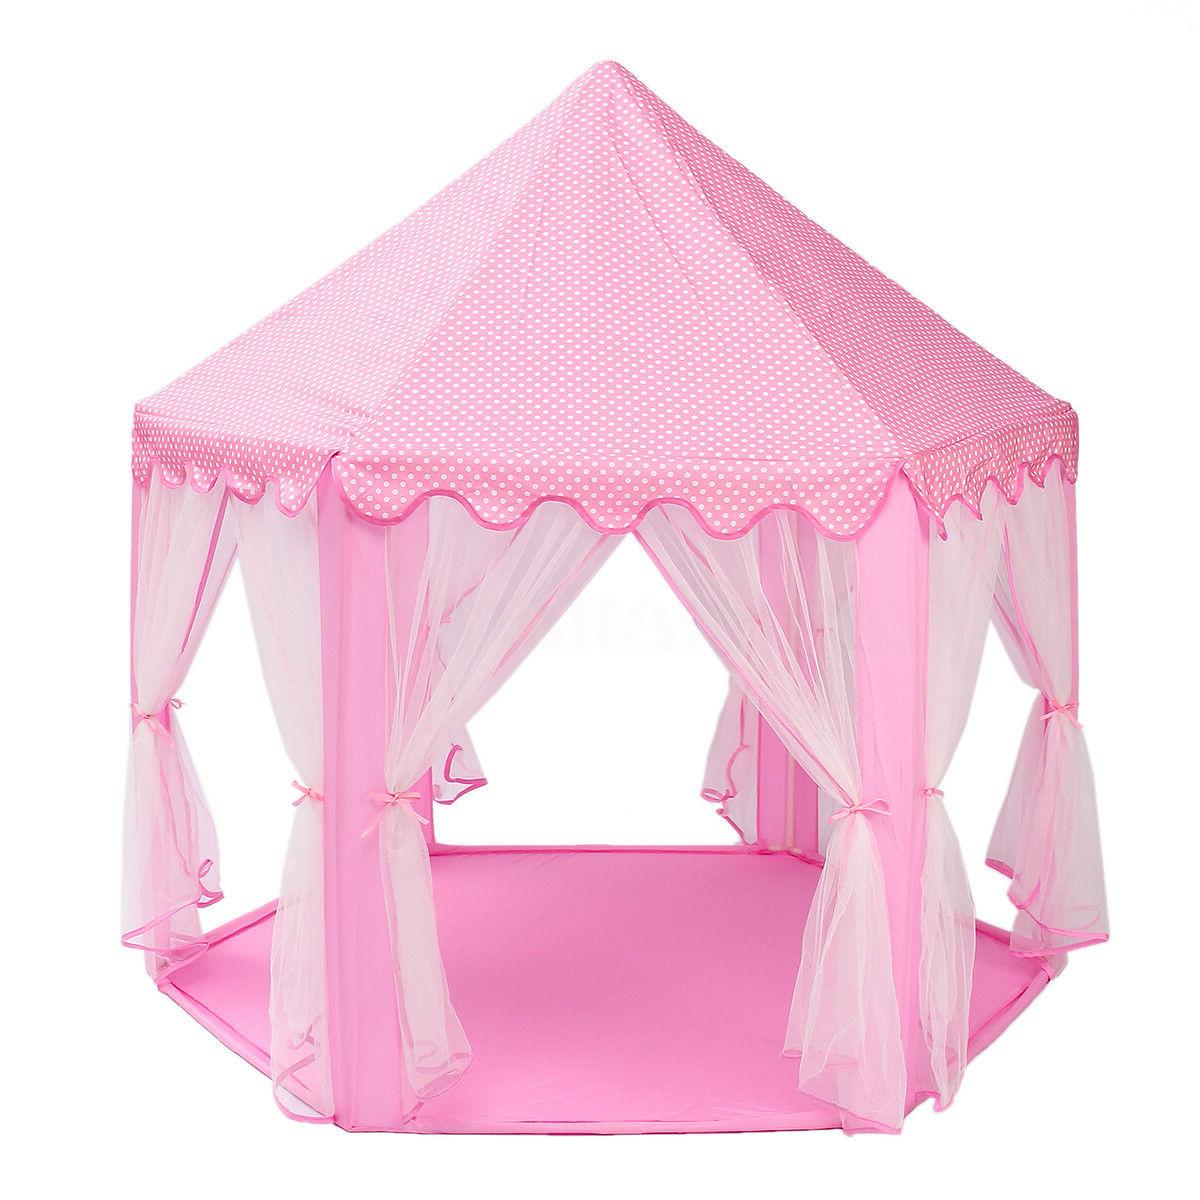 Girls Pink Cute Playhouse Play Tent Outdoor !